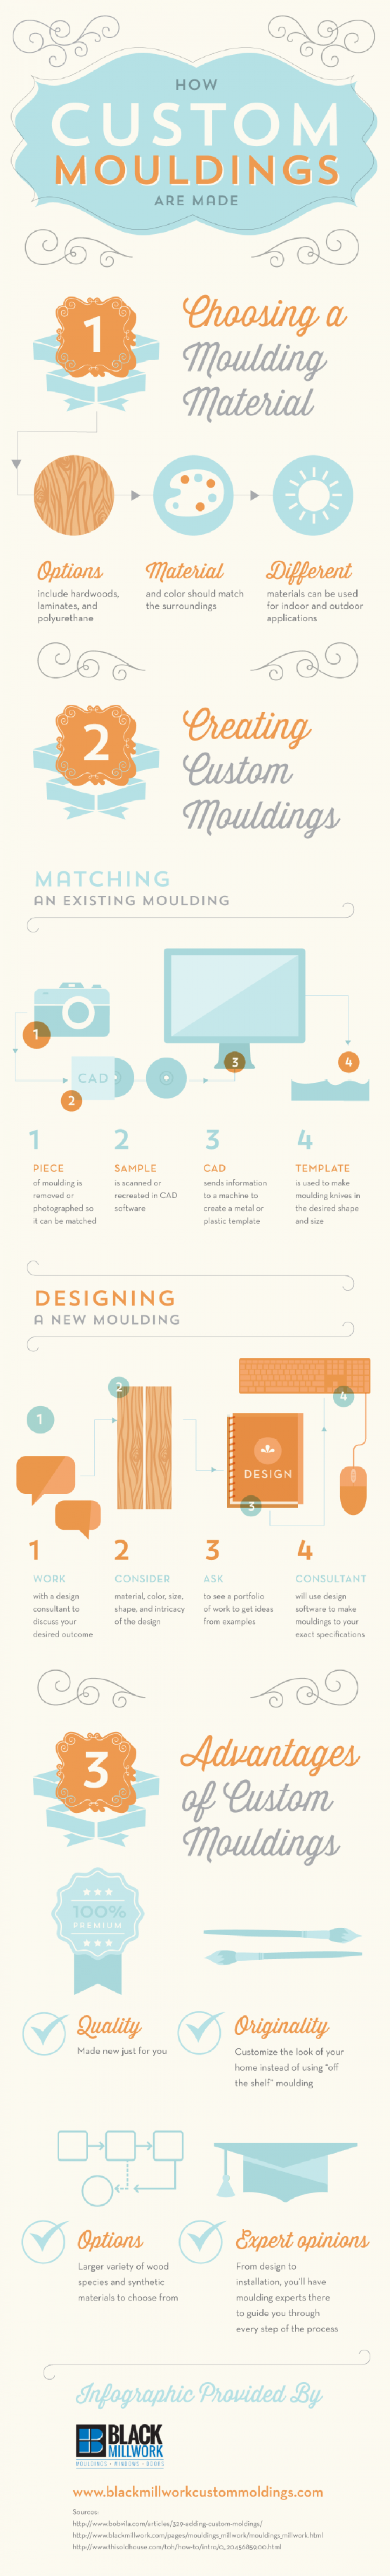 How Custom Mouldings Are Made Infographic